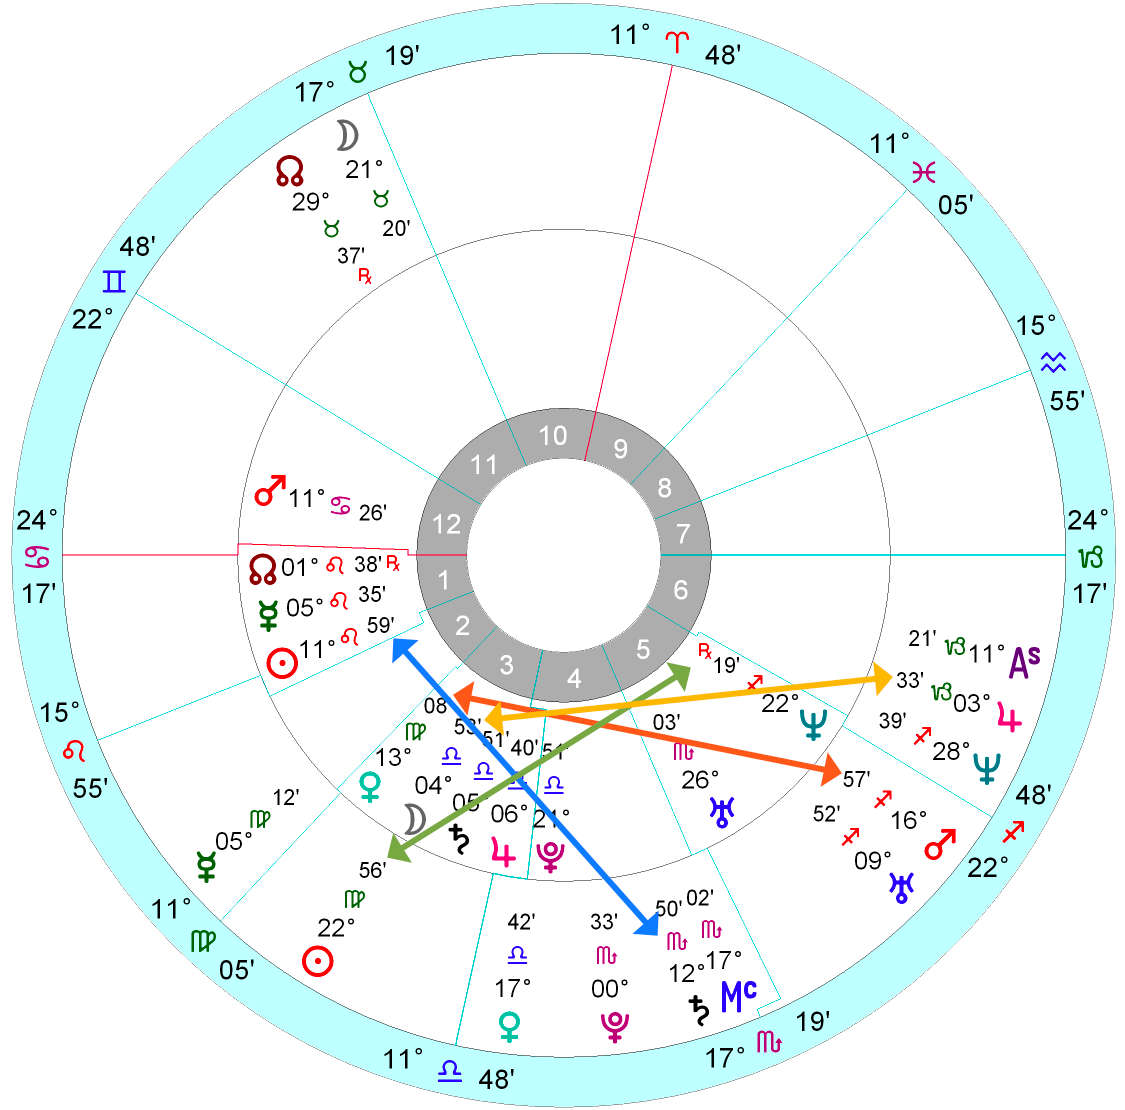 ea00fe14e This is also very accurate birth data. If we put Meghan's chart in the  inner circle, and Harry's on the outside, we get this: Meghan Markle's  horoscope